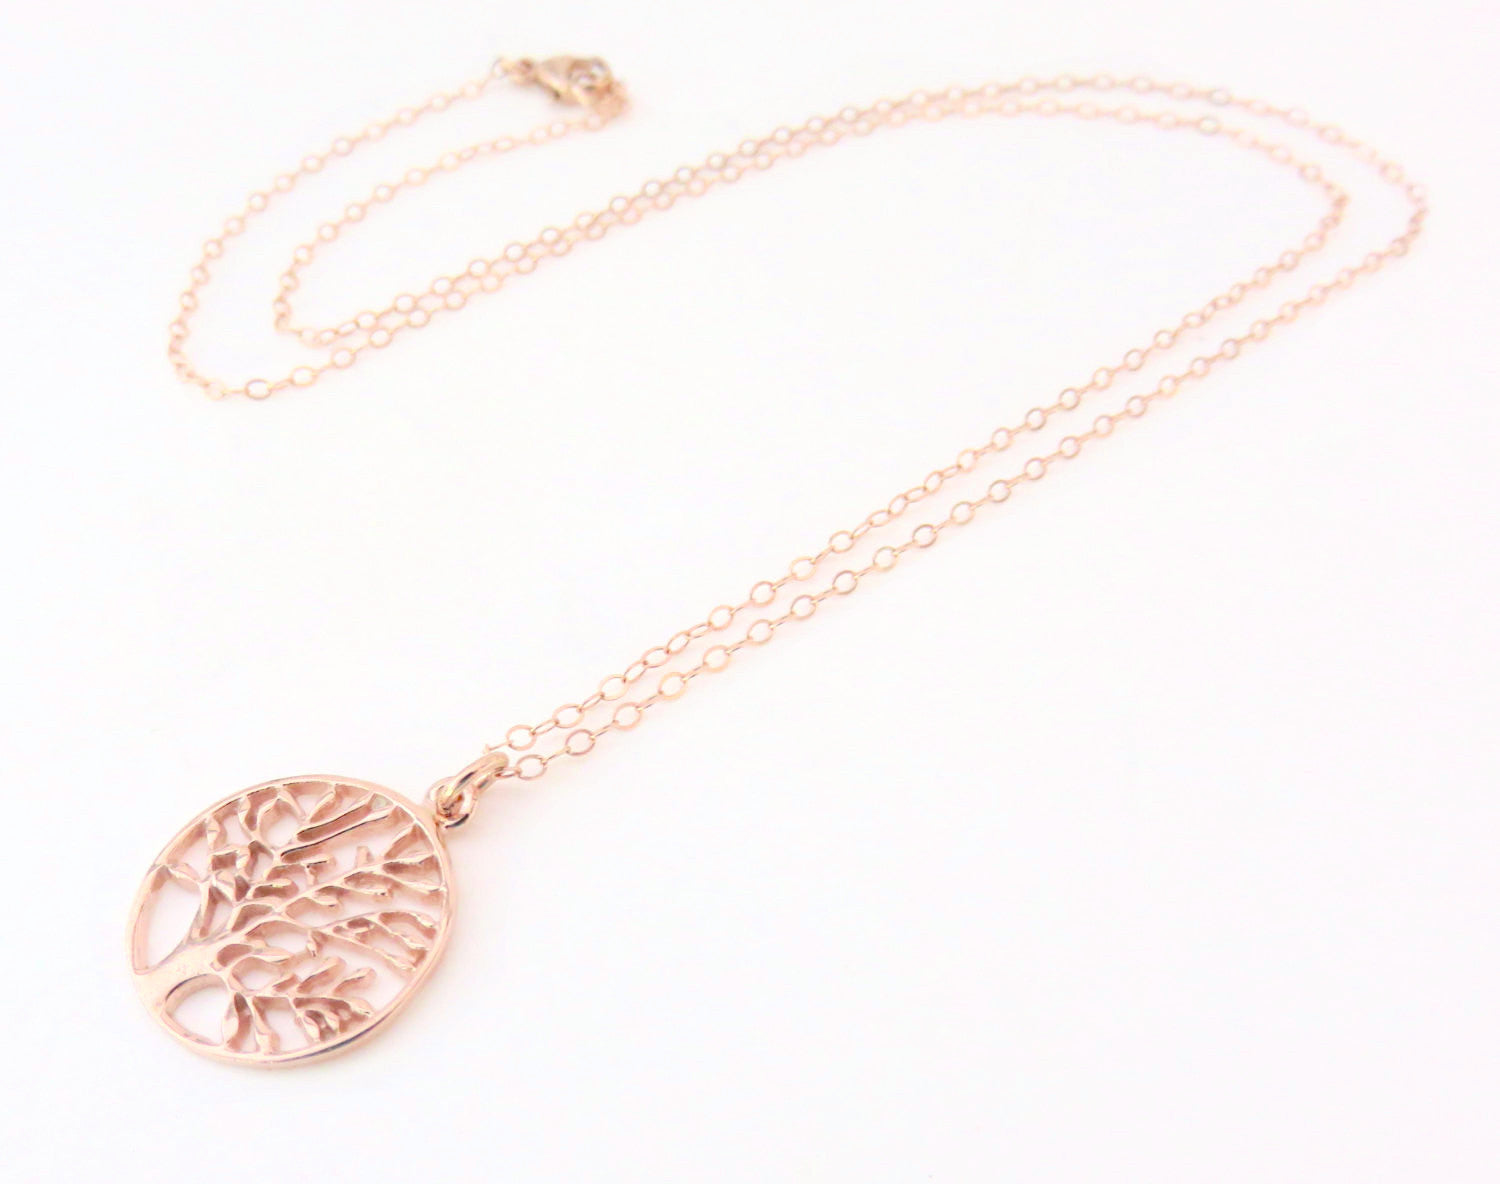 Rose Gold Tree of Life Necklace Handmade Jewelry by Marcia H